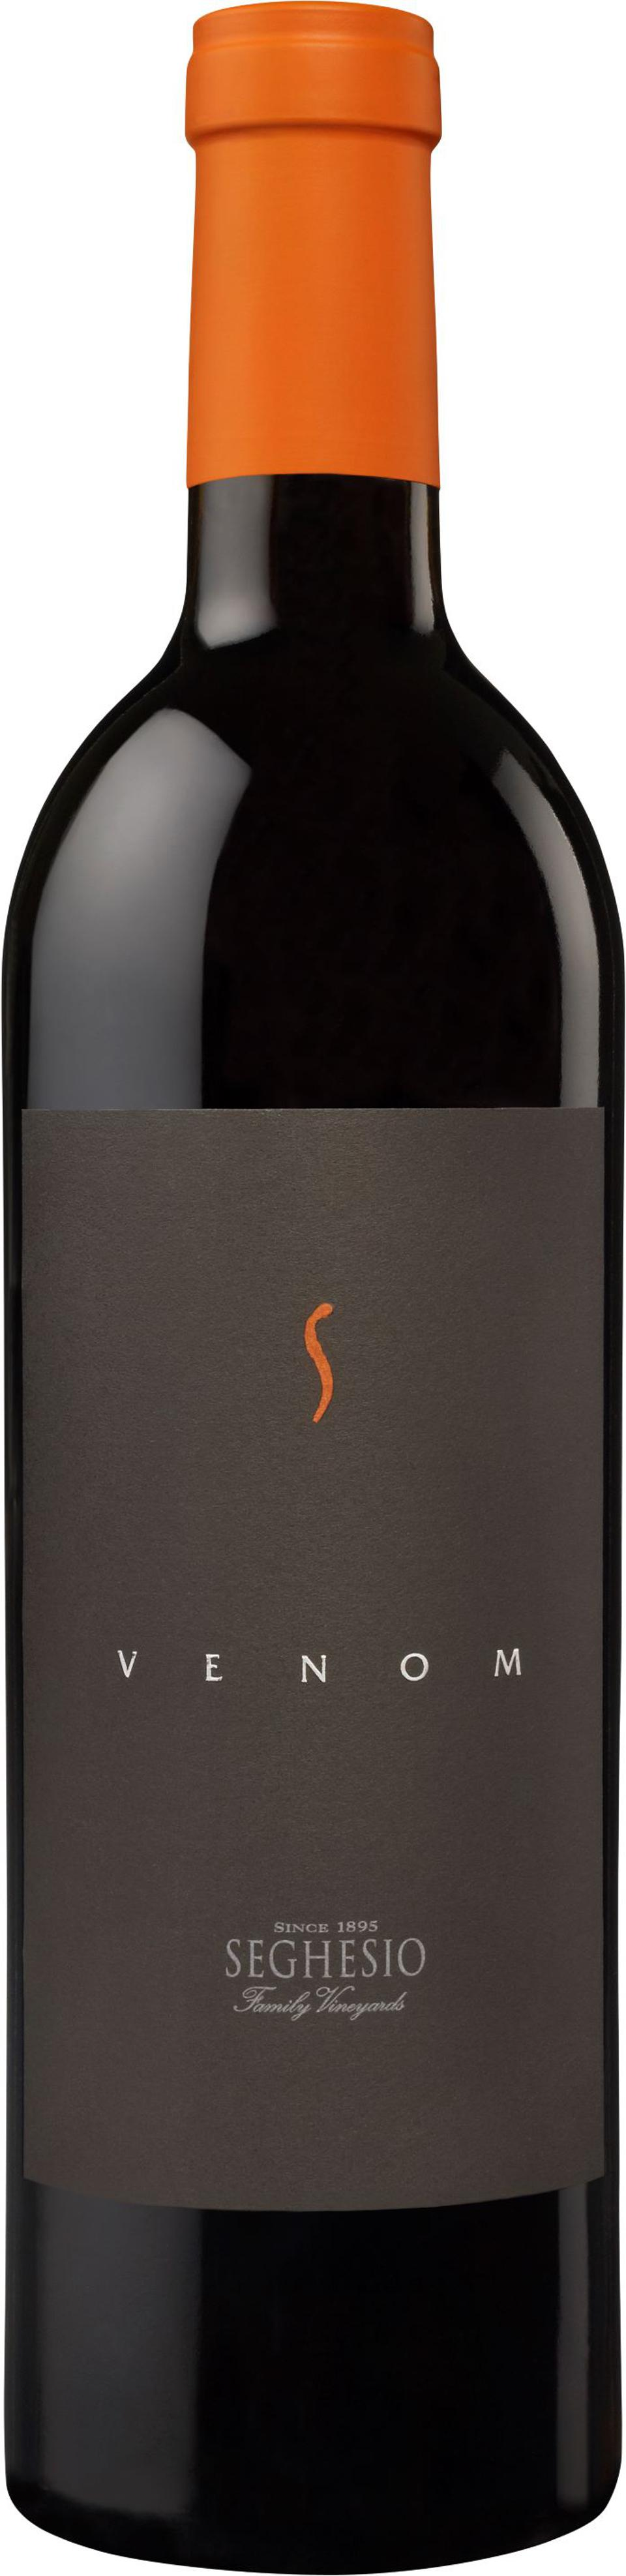 The name says it all: Venom, a spookily delicious wine.